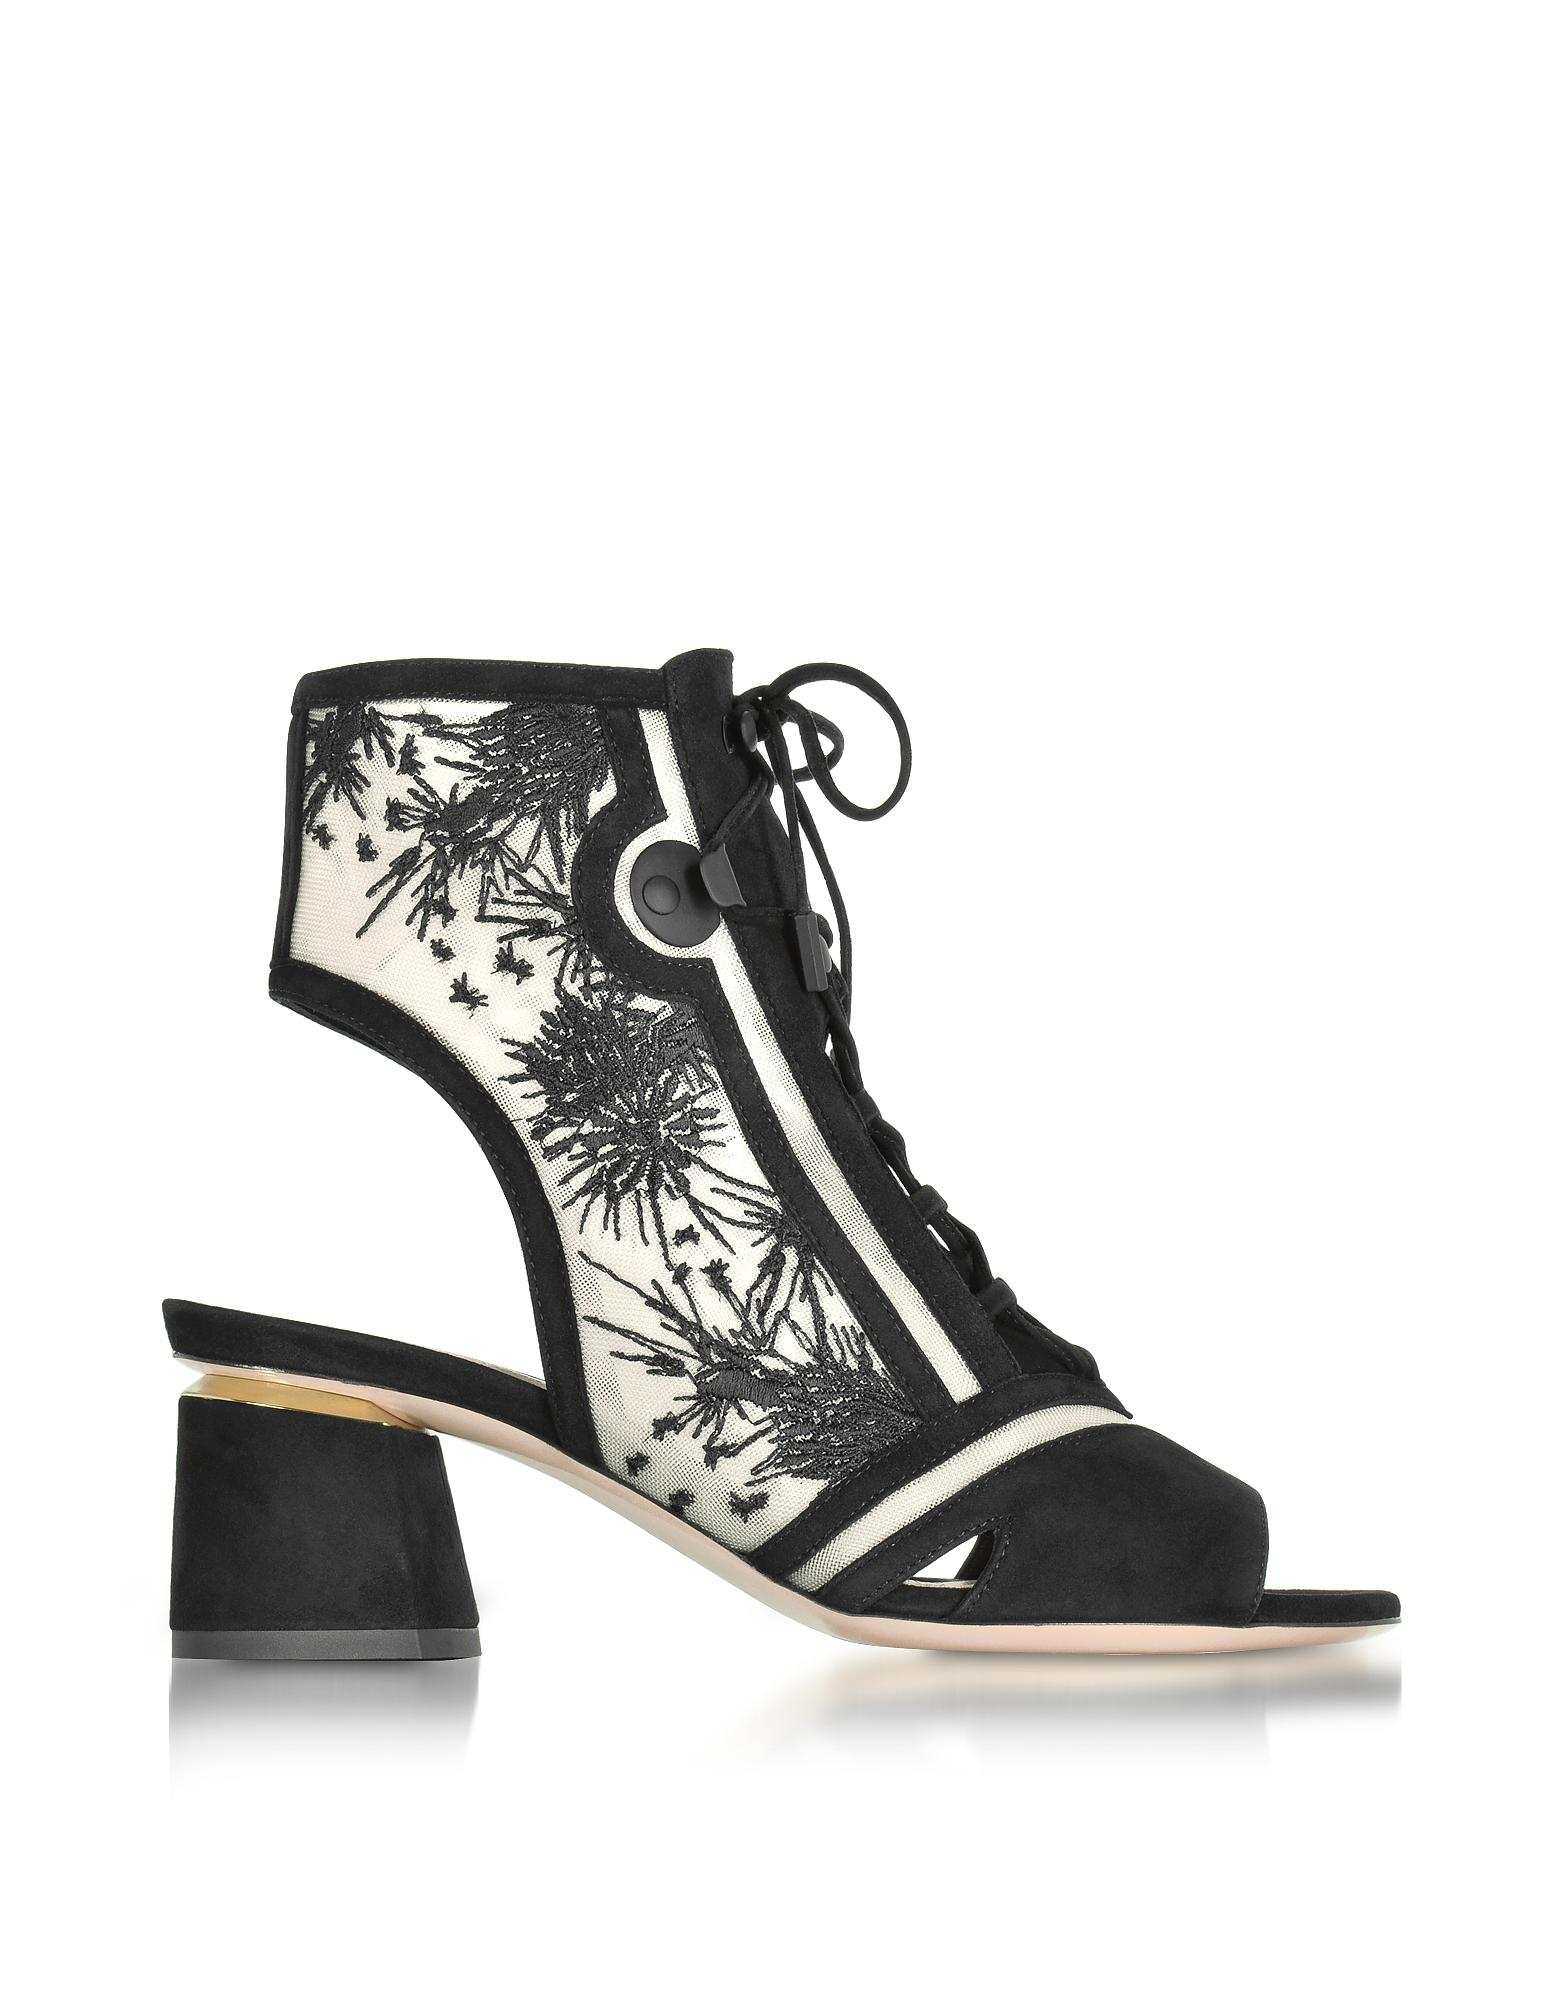 Nicholas Kirkwood Satin Lace-Up Booties free shipping latest sale with mastercard clearance official site cheap sale cheapest price hM6IIZ